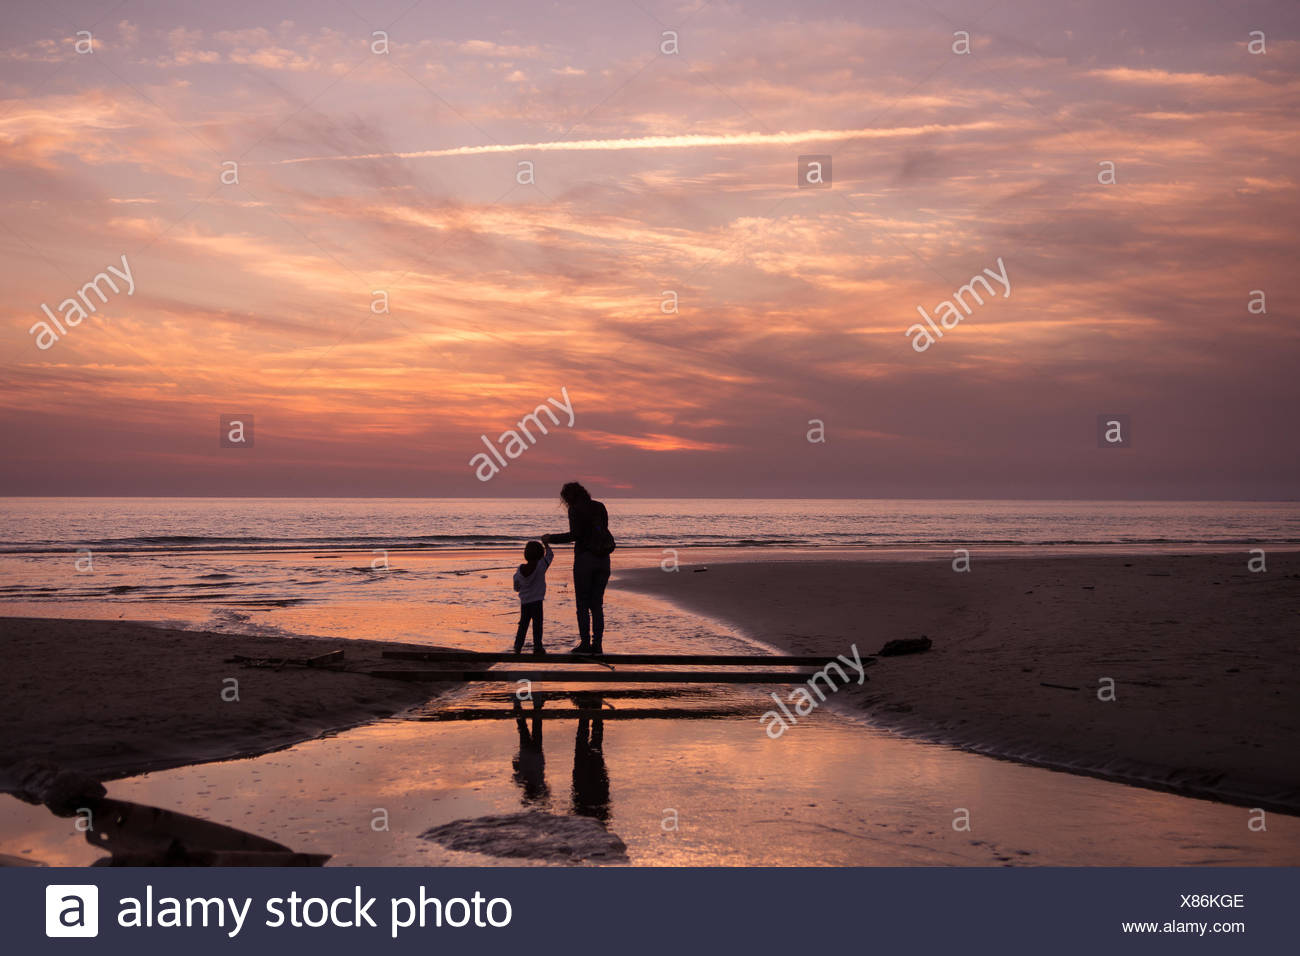 One Day Son, All this will be yours - Stock Image